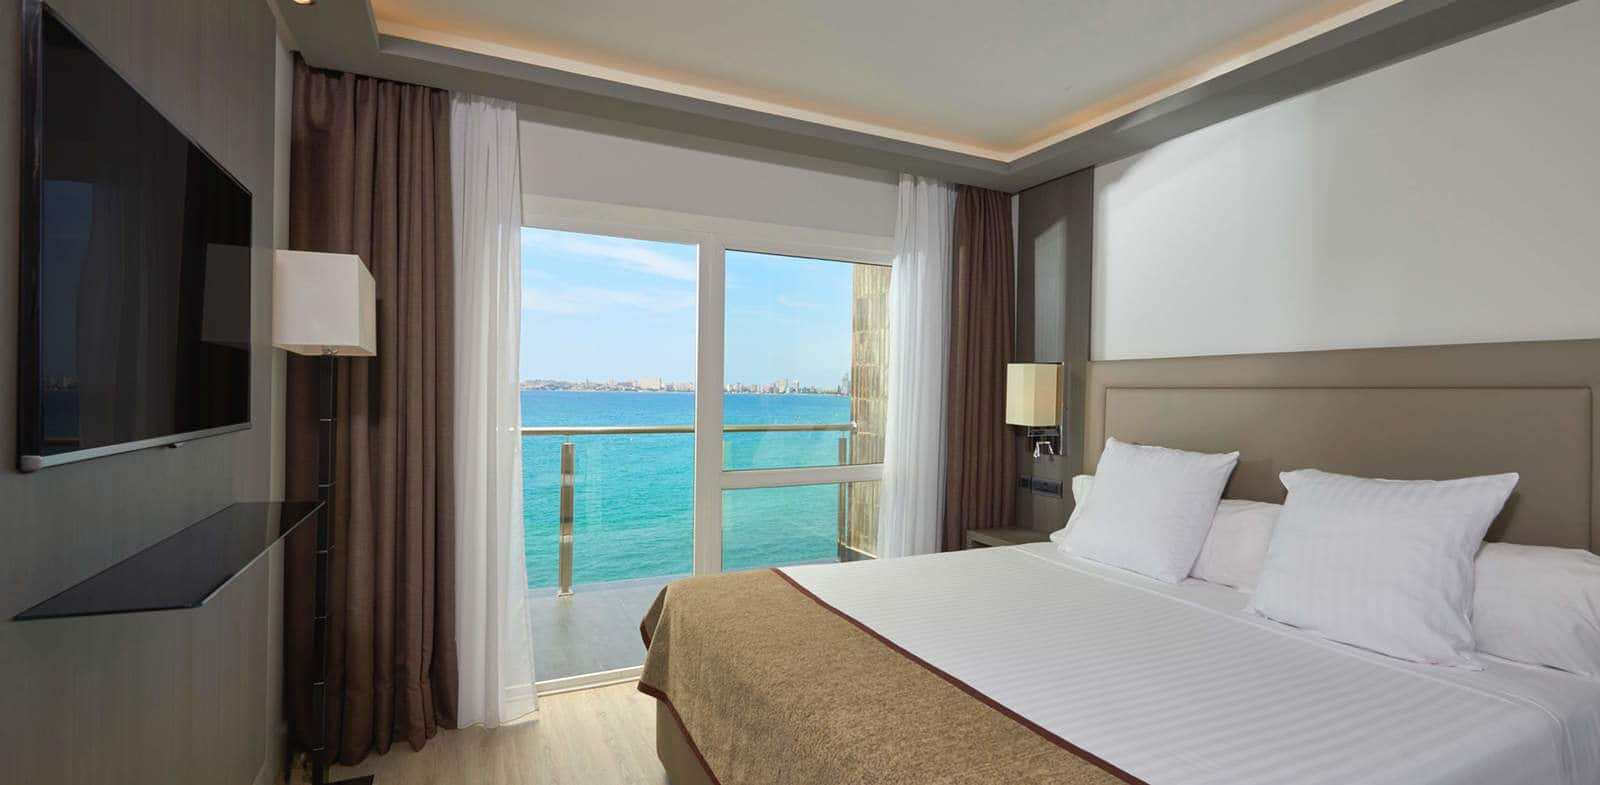 Suite Grand del hotel Melia Alicante